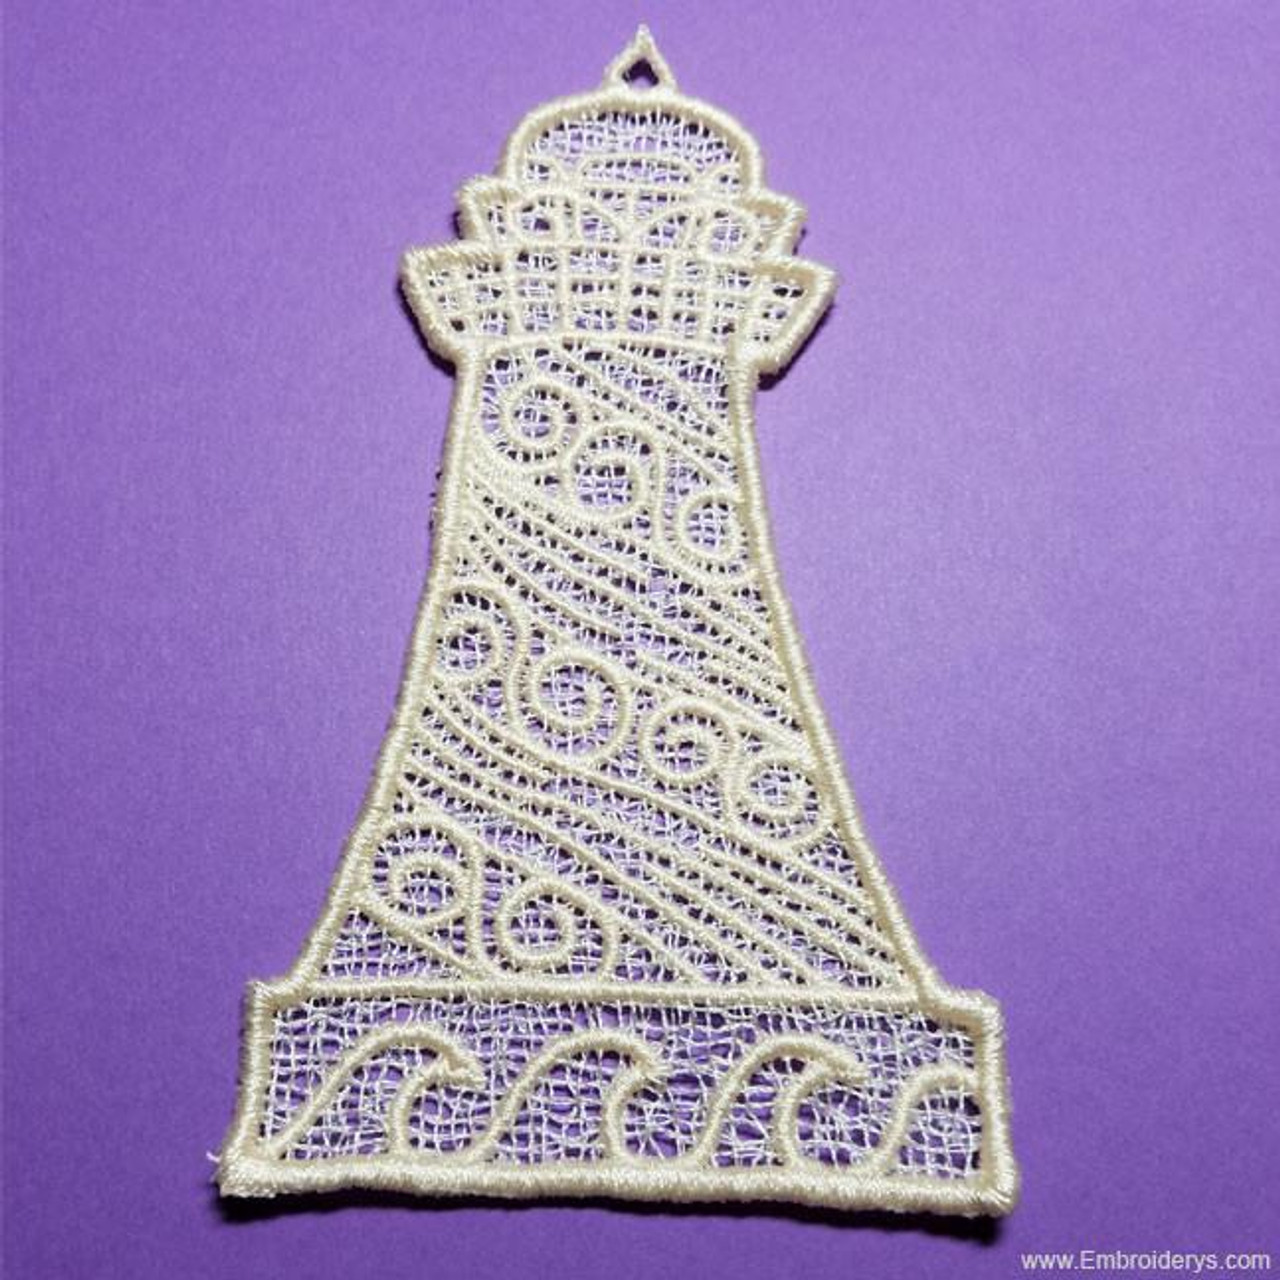 Lighthouse Free Standing Lace Machine Embroidery Designs